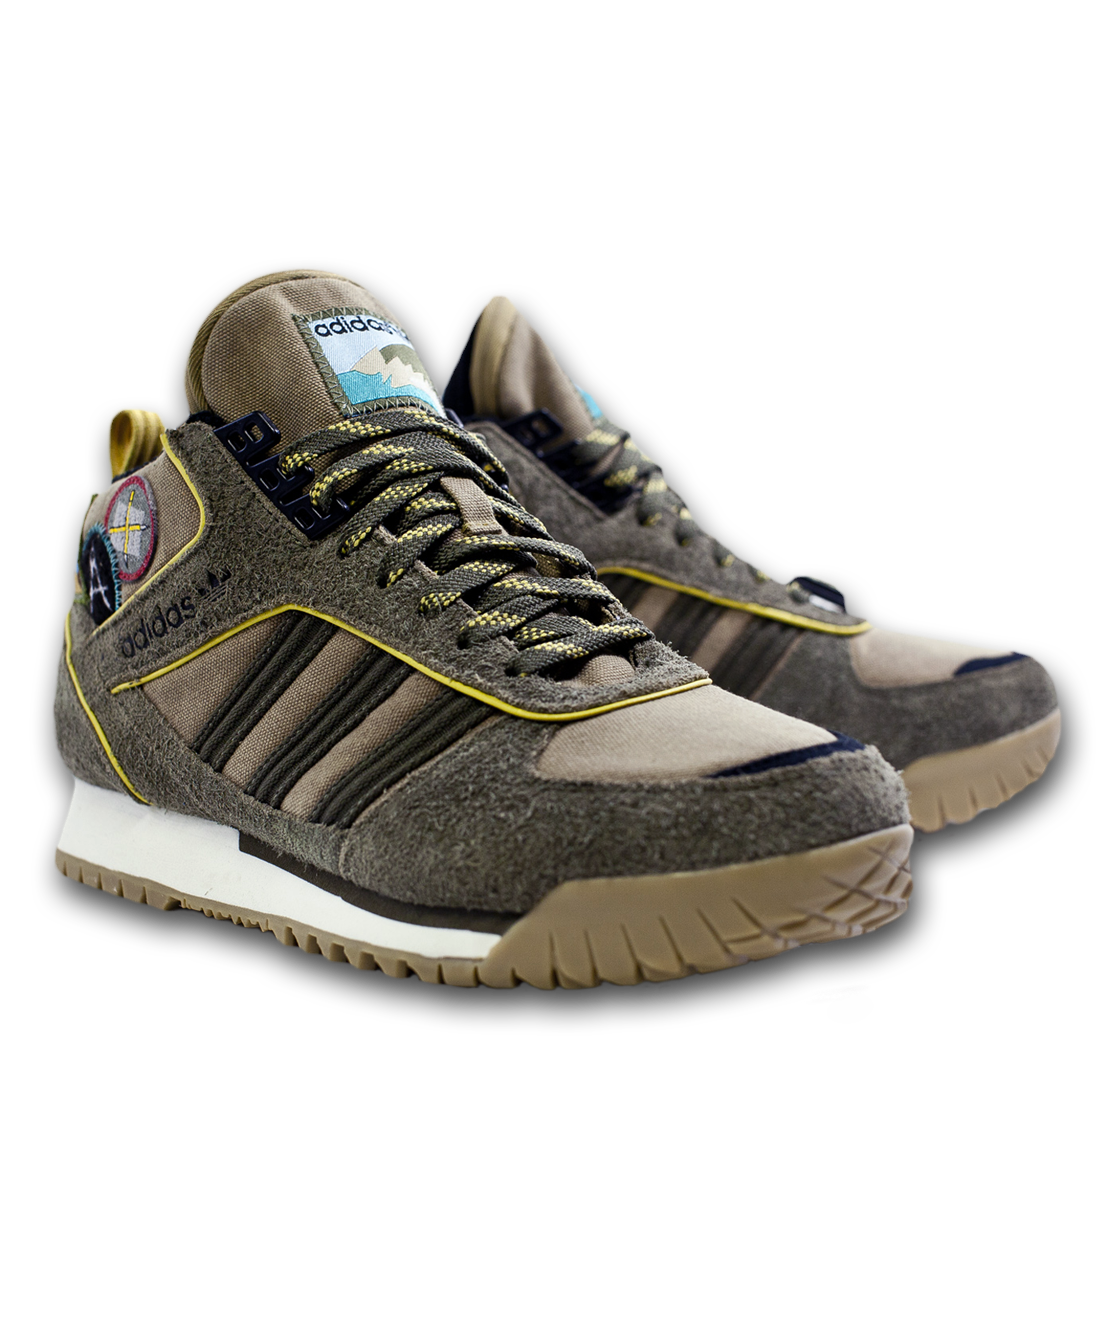 d2803020 Extra Butter presents adidas Originals ZX Trail Mid